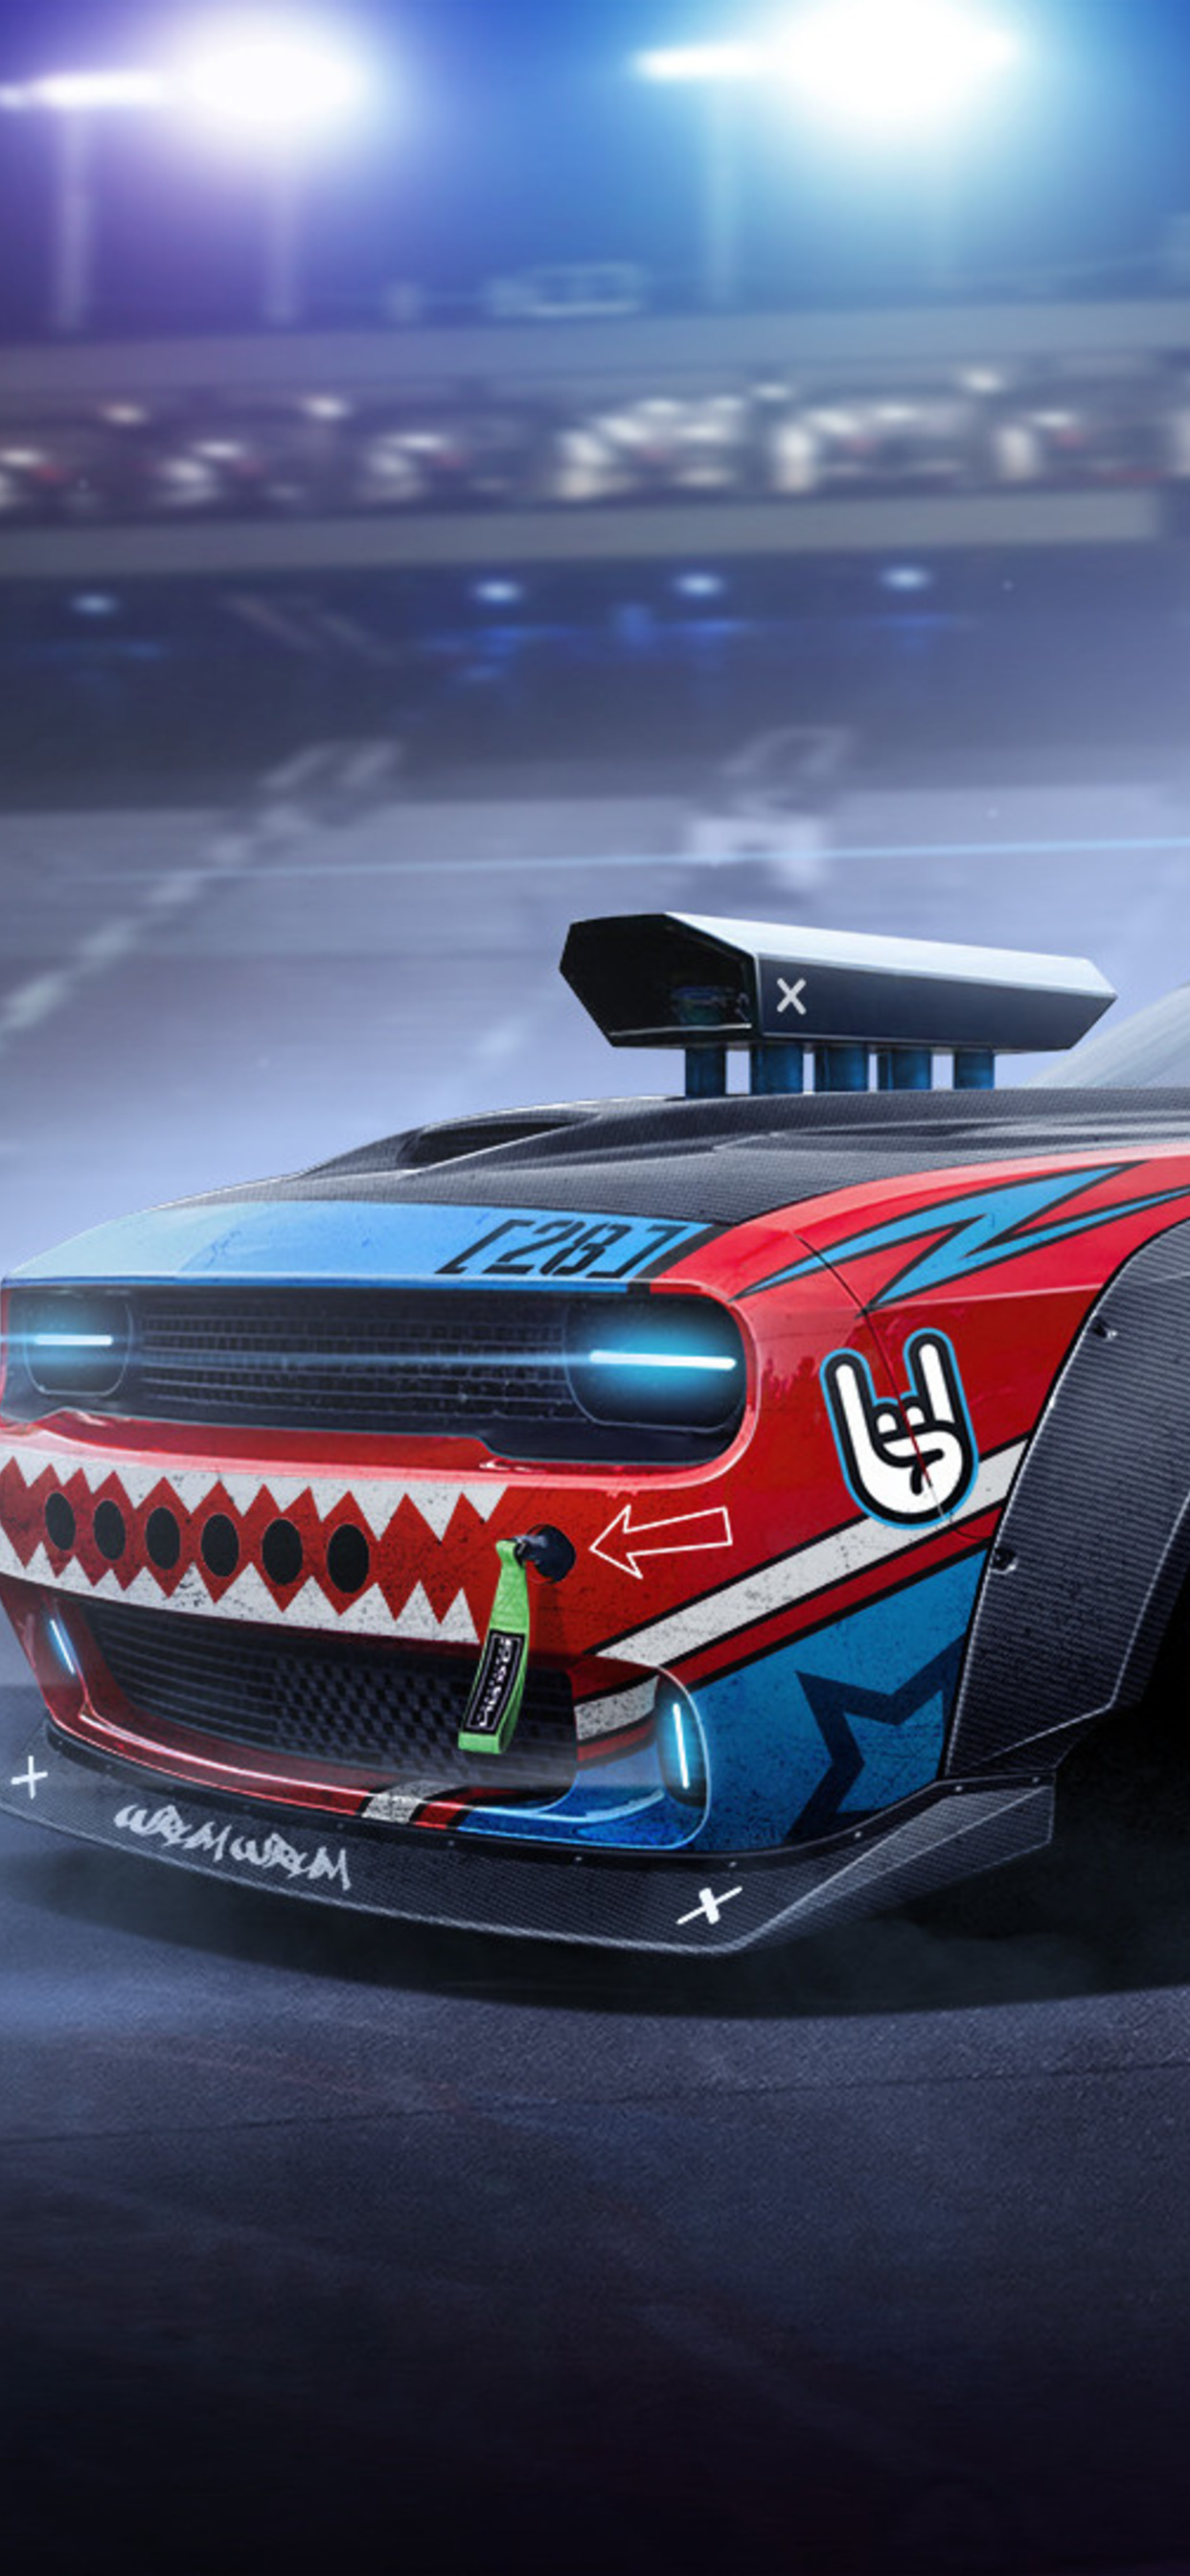 amazing-drift-car-artwork-ku.jpg